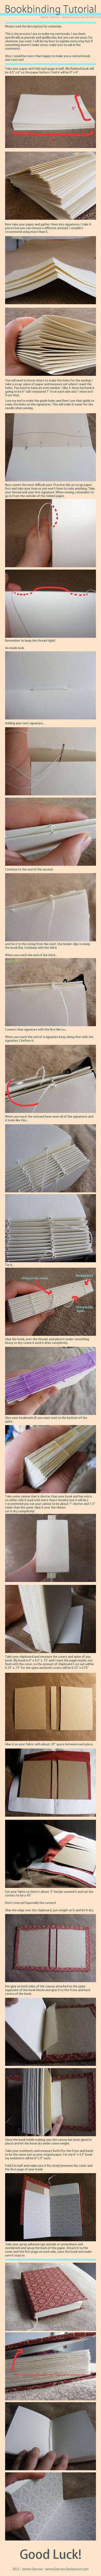 Book binding tutorial. This is pretty much how I make my handmade journals...